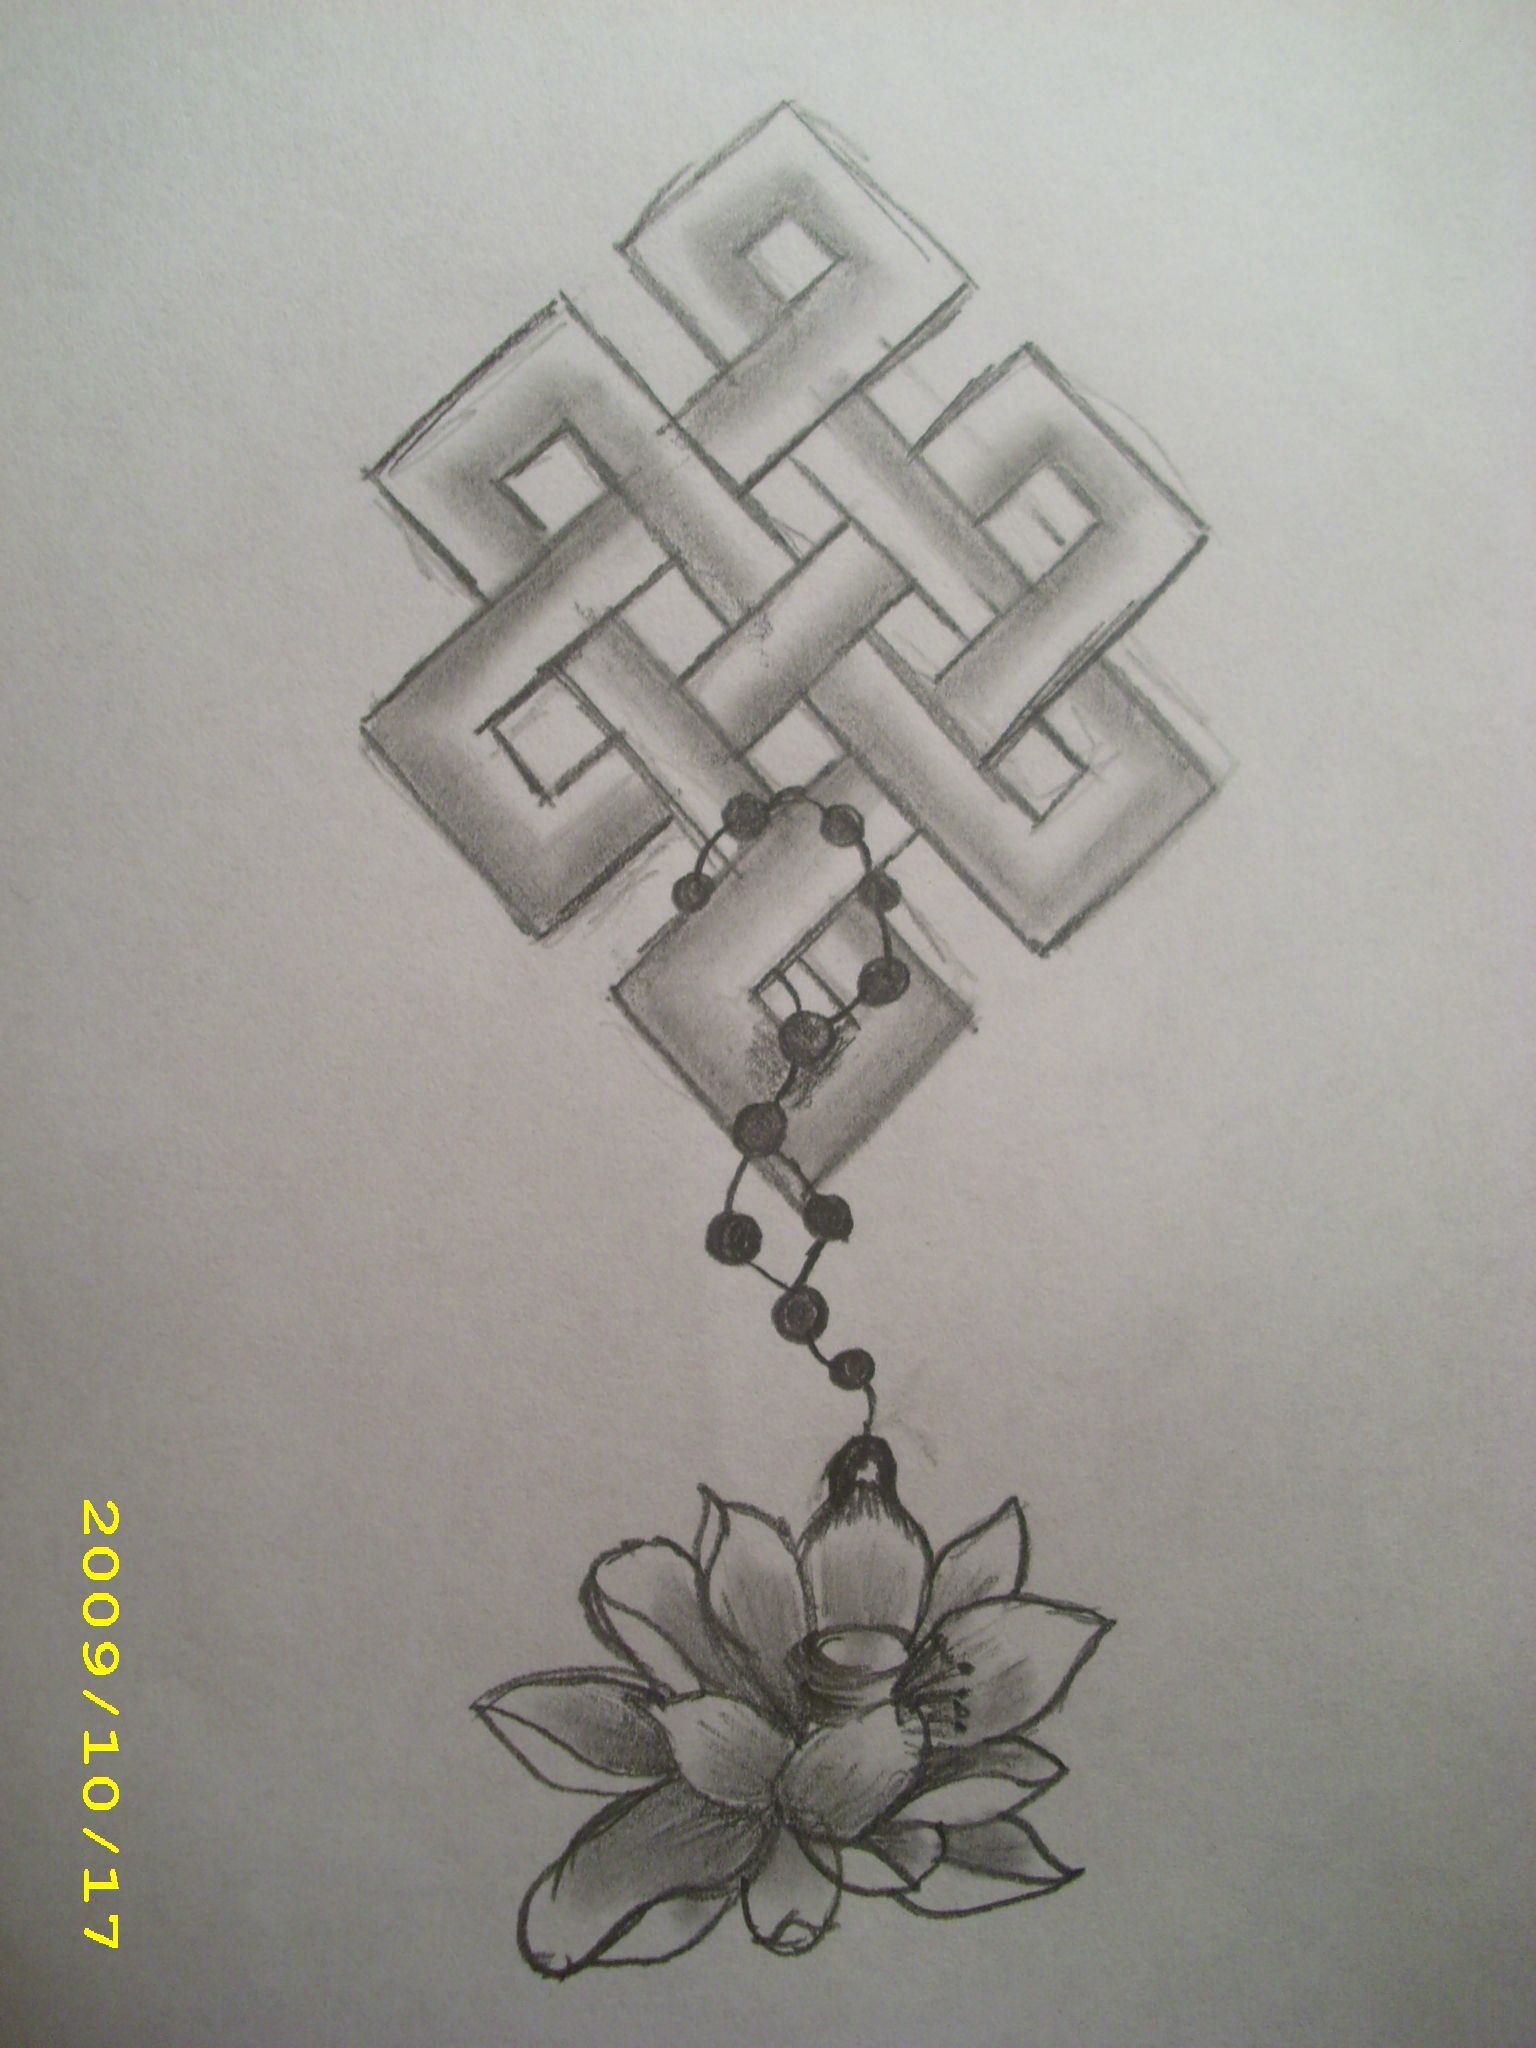 Images for buddhist tattoo symbols and meanings craft ideas images for buddhist tattoo symbols and meanings buycottarizona Image collections